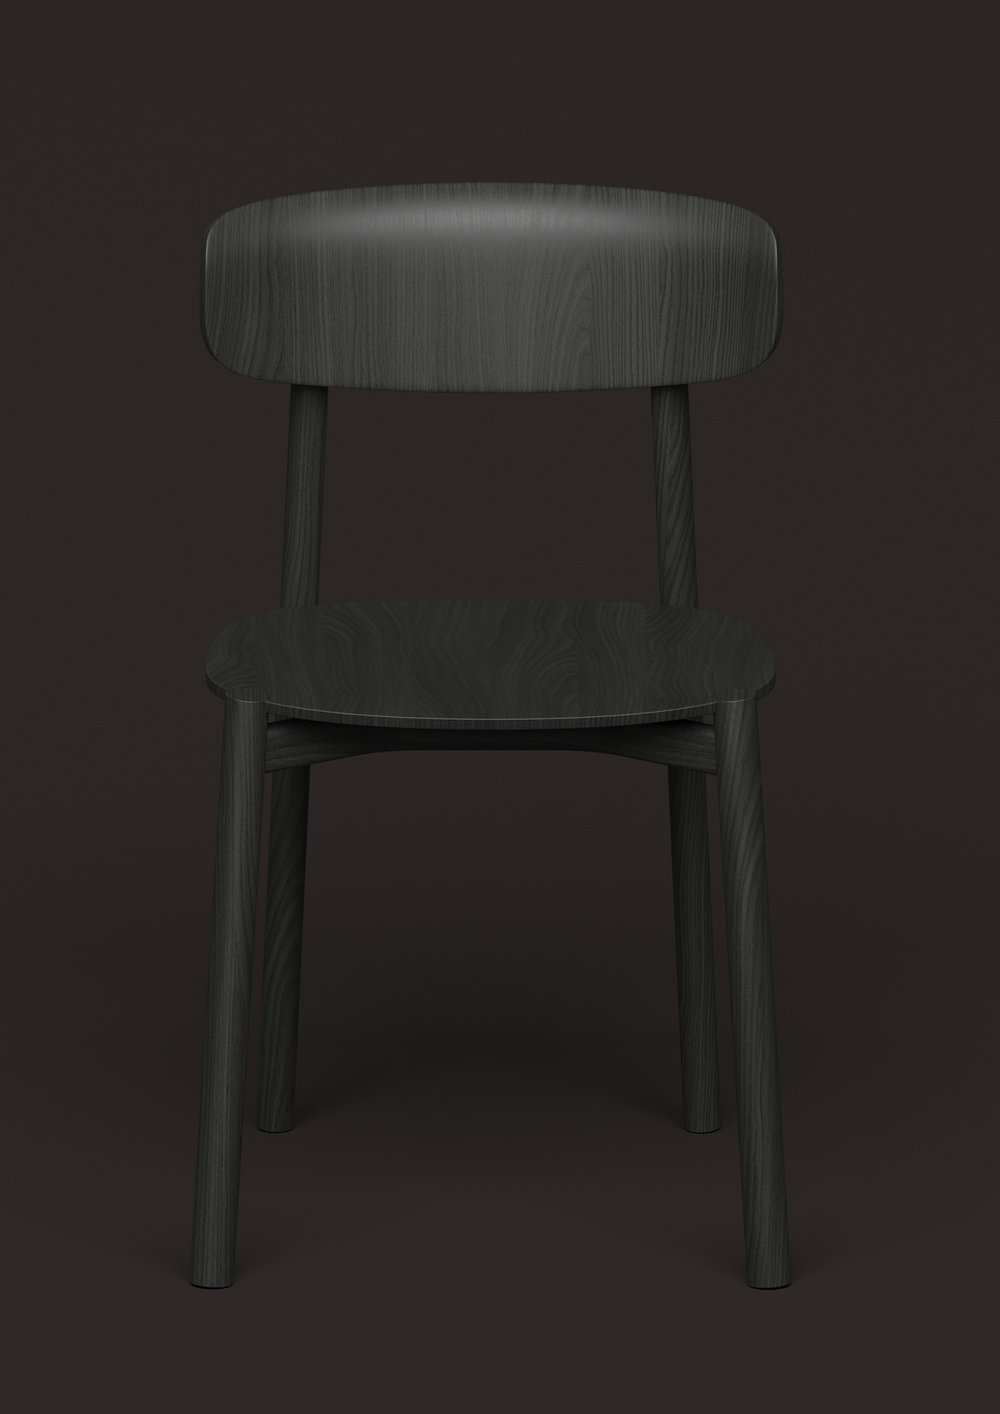 PEG CHAIR DESIGNED BY BURAK KOCAK